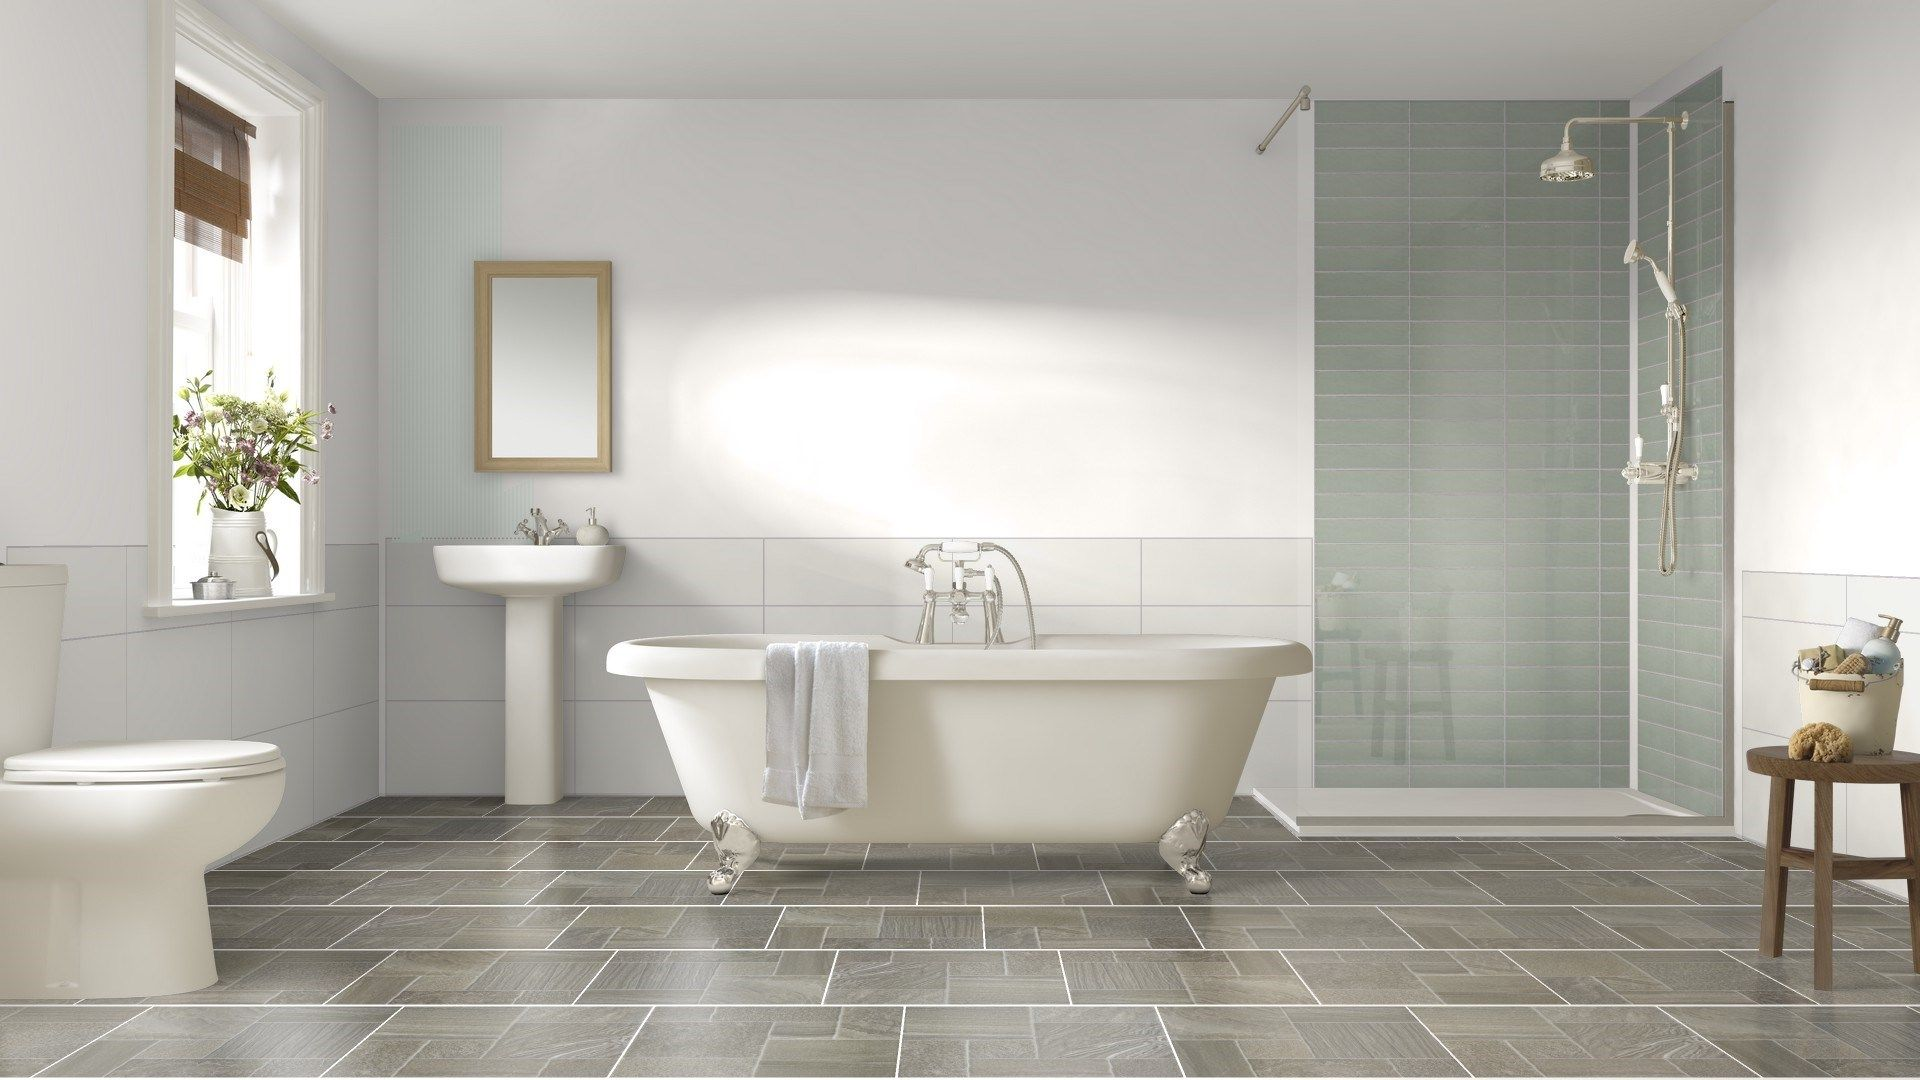 Tile Giant Design Option 1 Diffe Colour Wet Room Beige Floor Tiles And White Wall